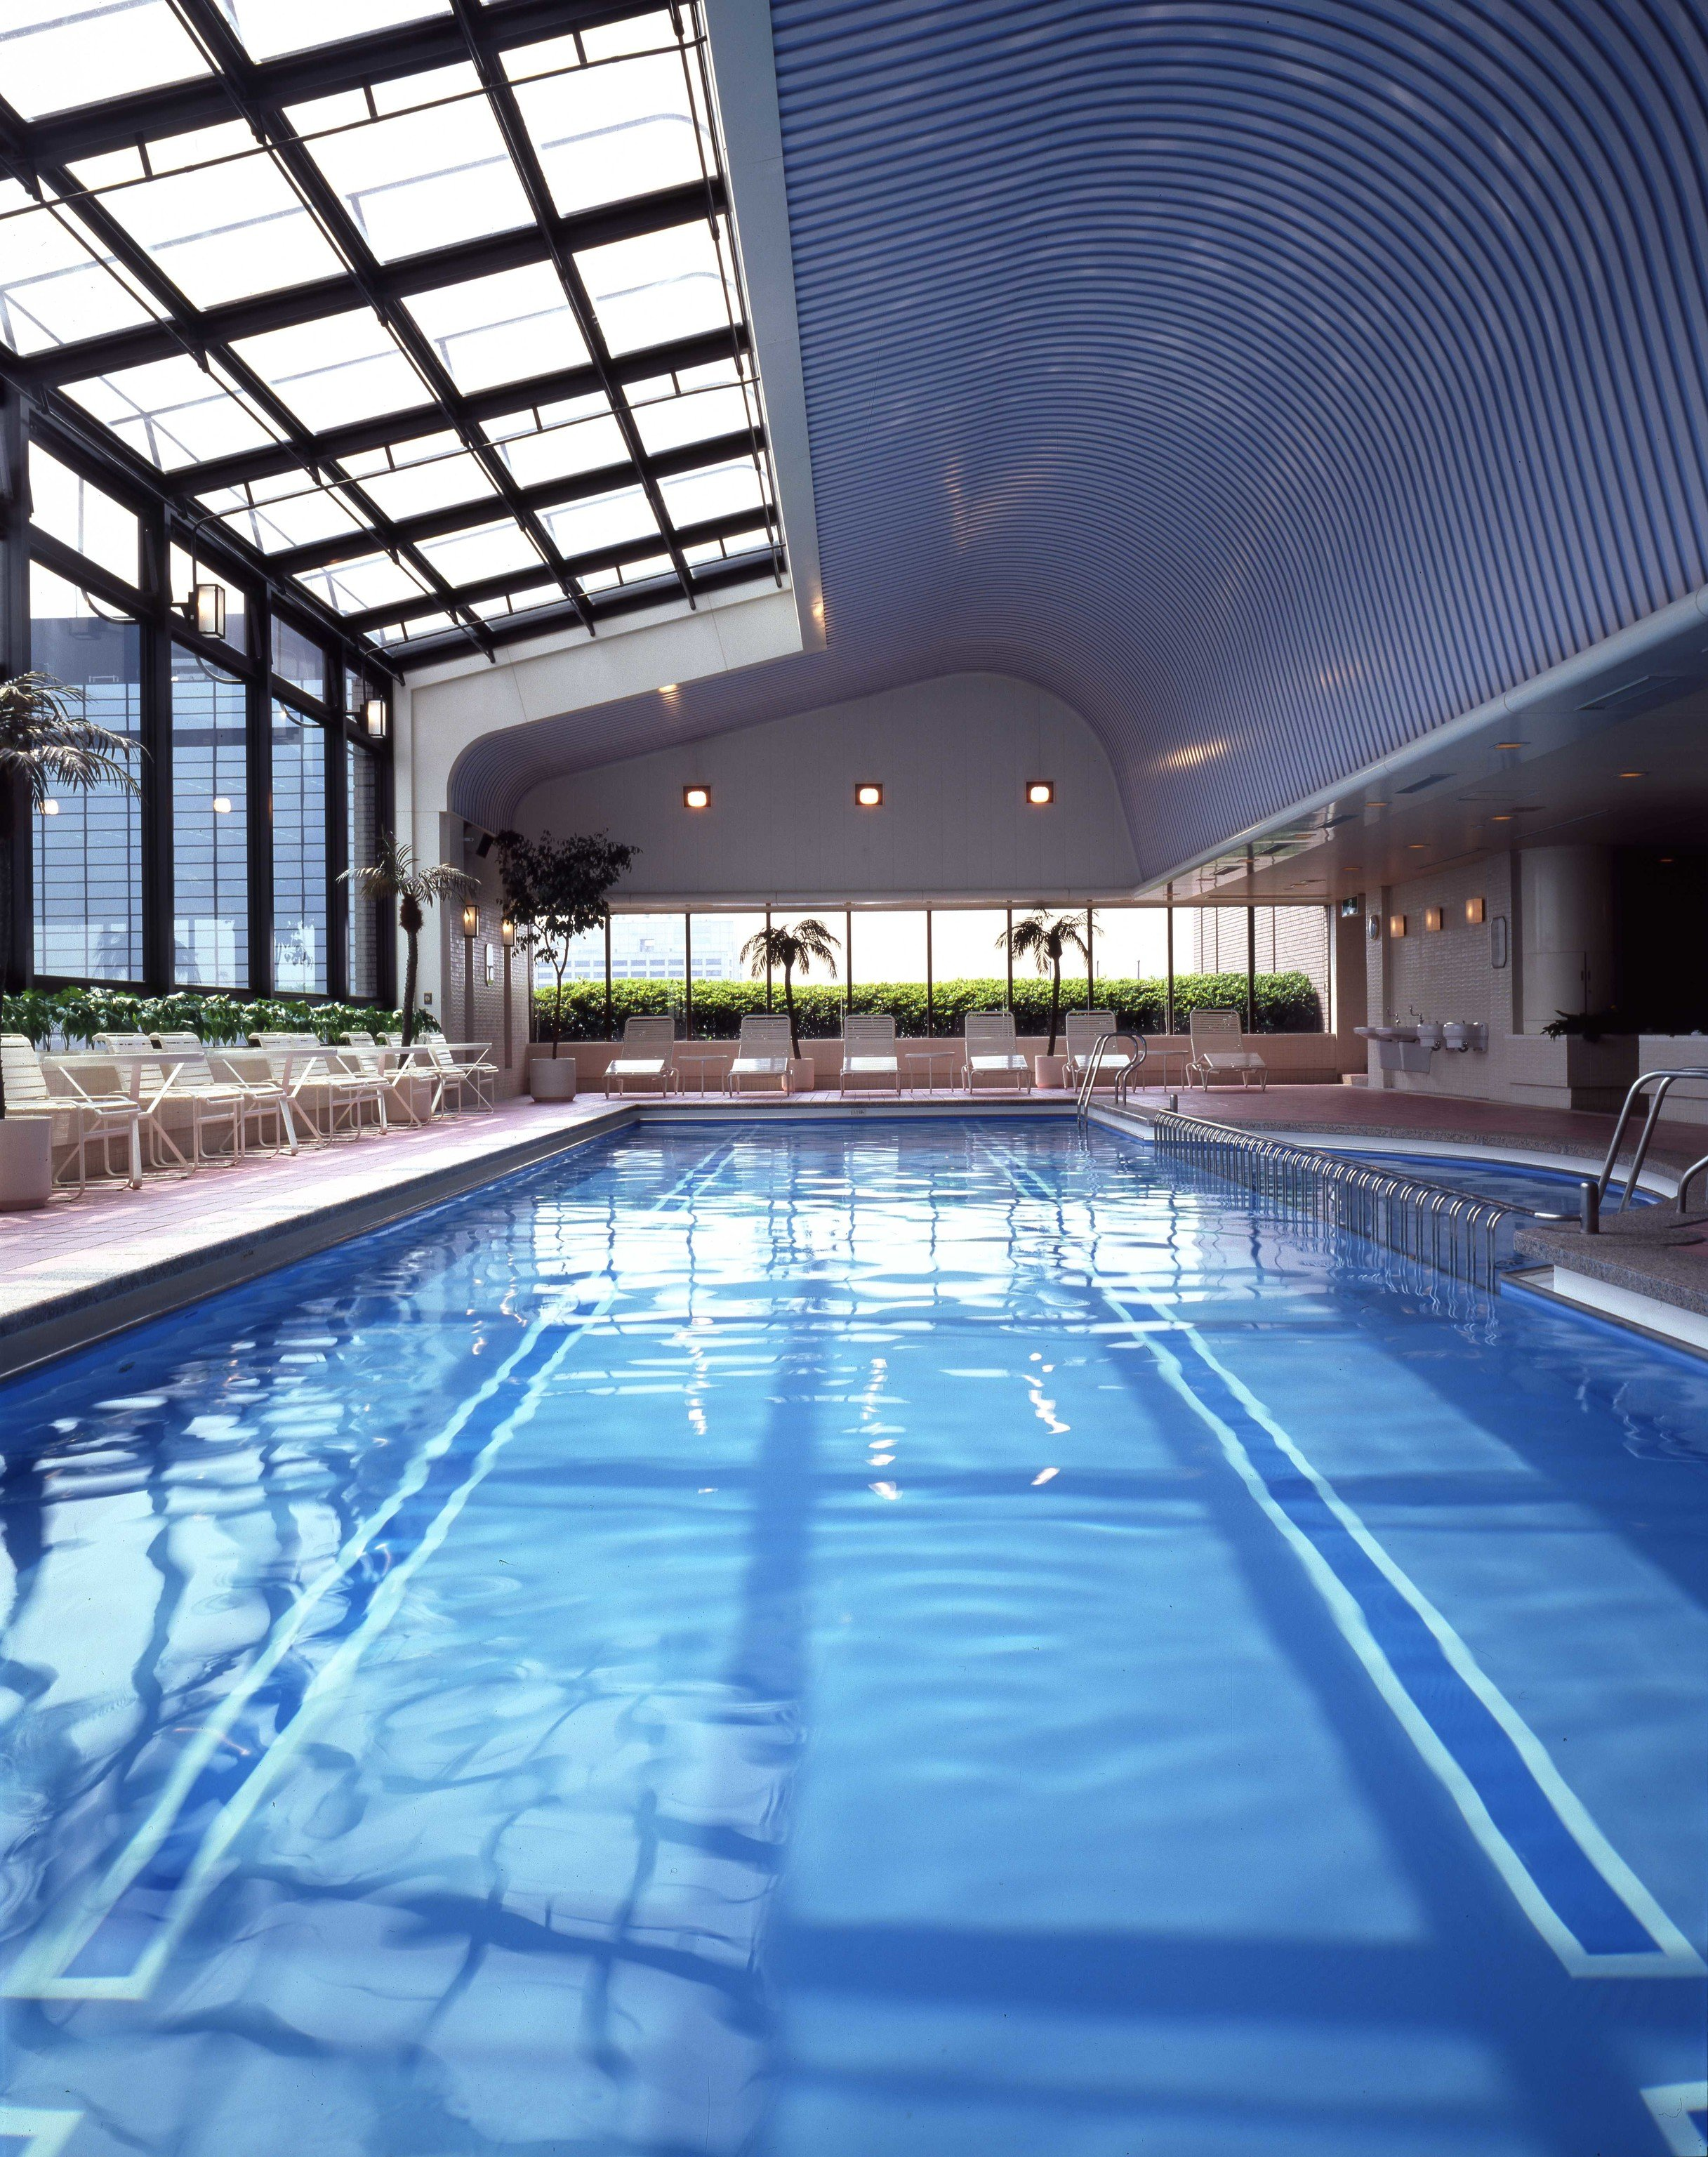 Hotels Japan Tokyo swimming pool leisure building structure leisure centre sport venue convention center ice rink estate